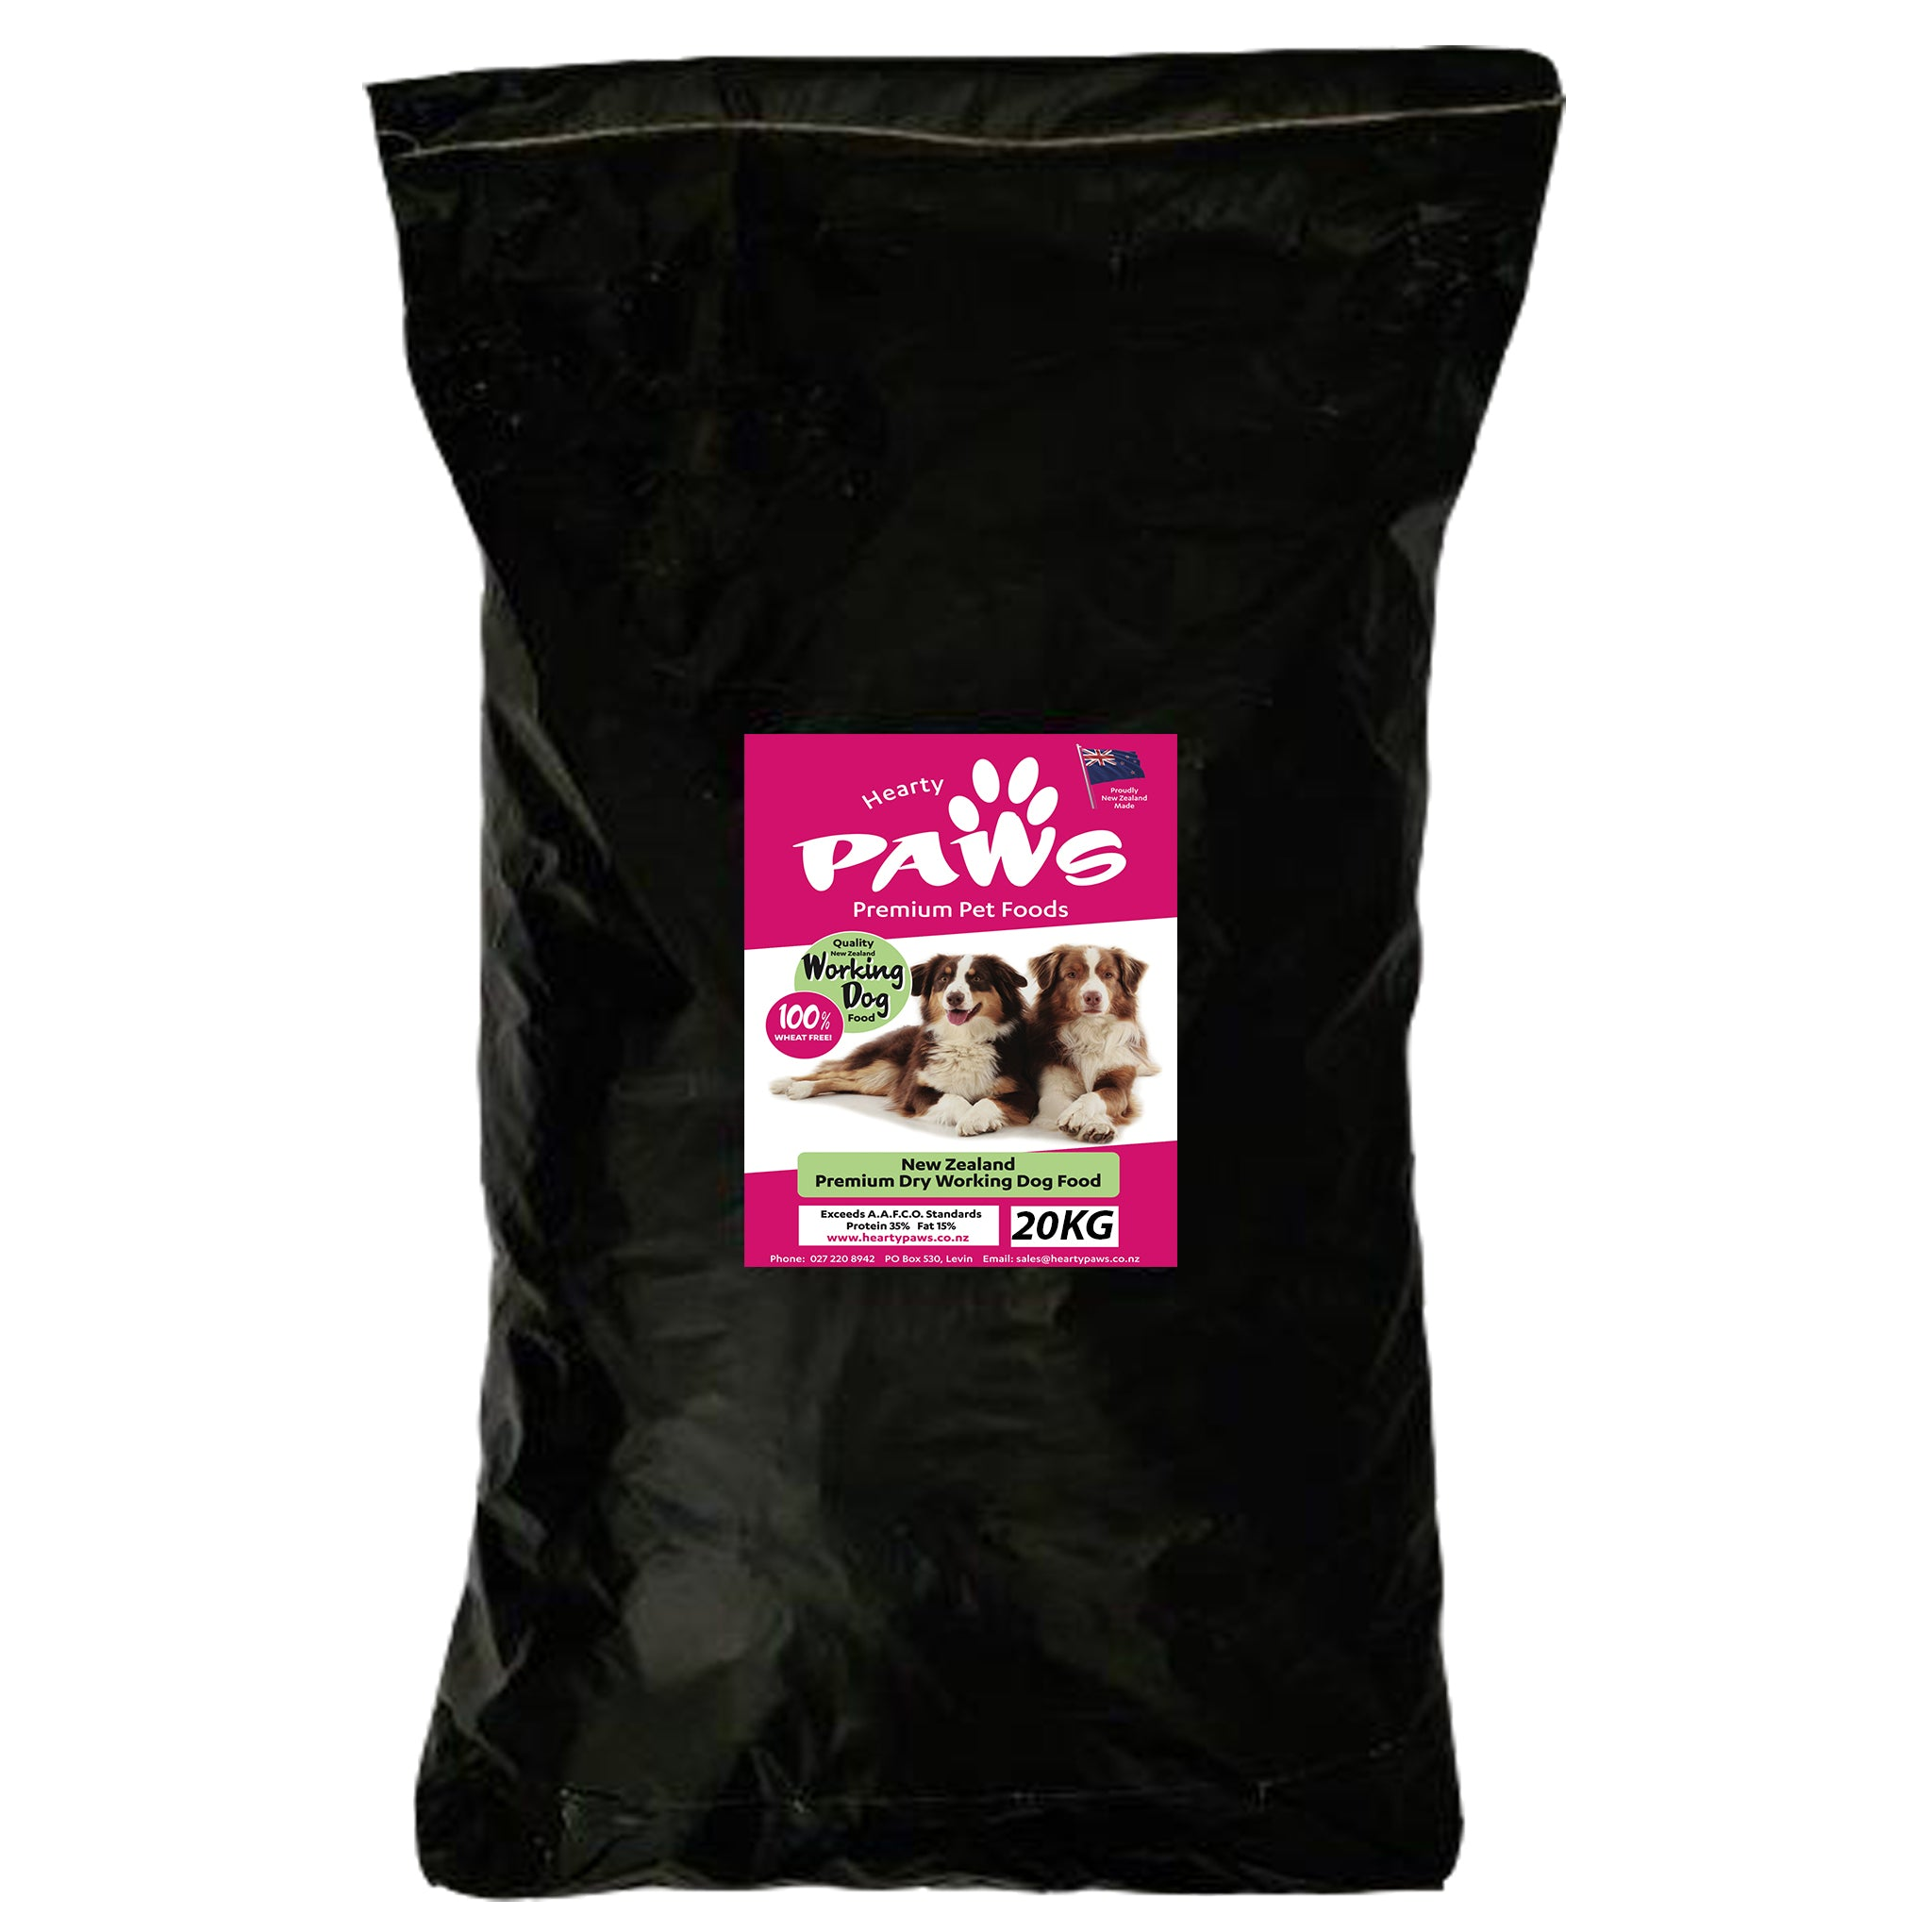 NZ Premium Dry Dog Food - 20kg Beef Working Dog